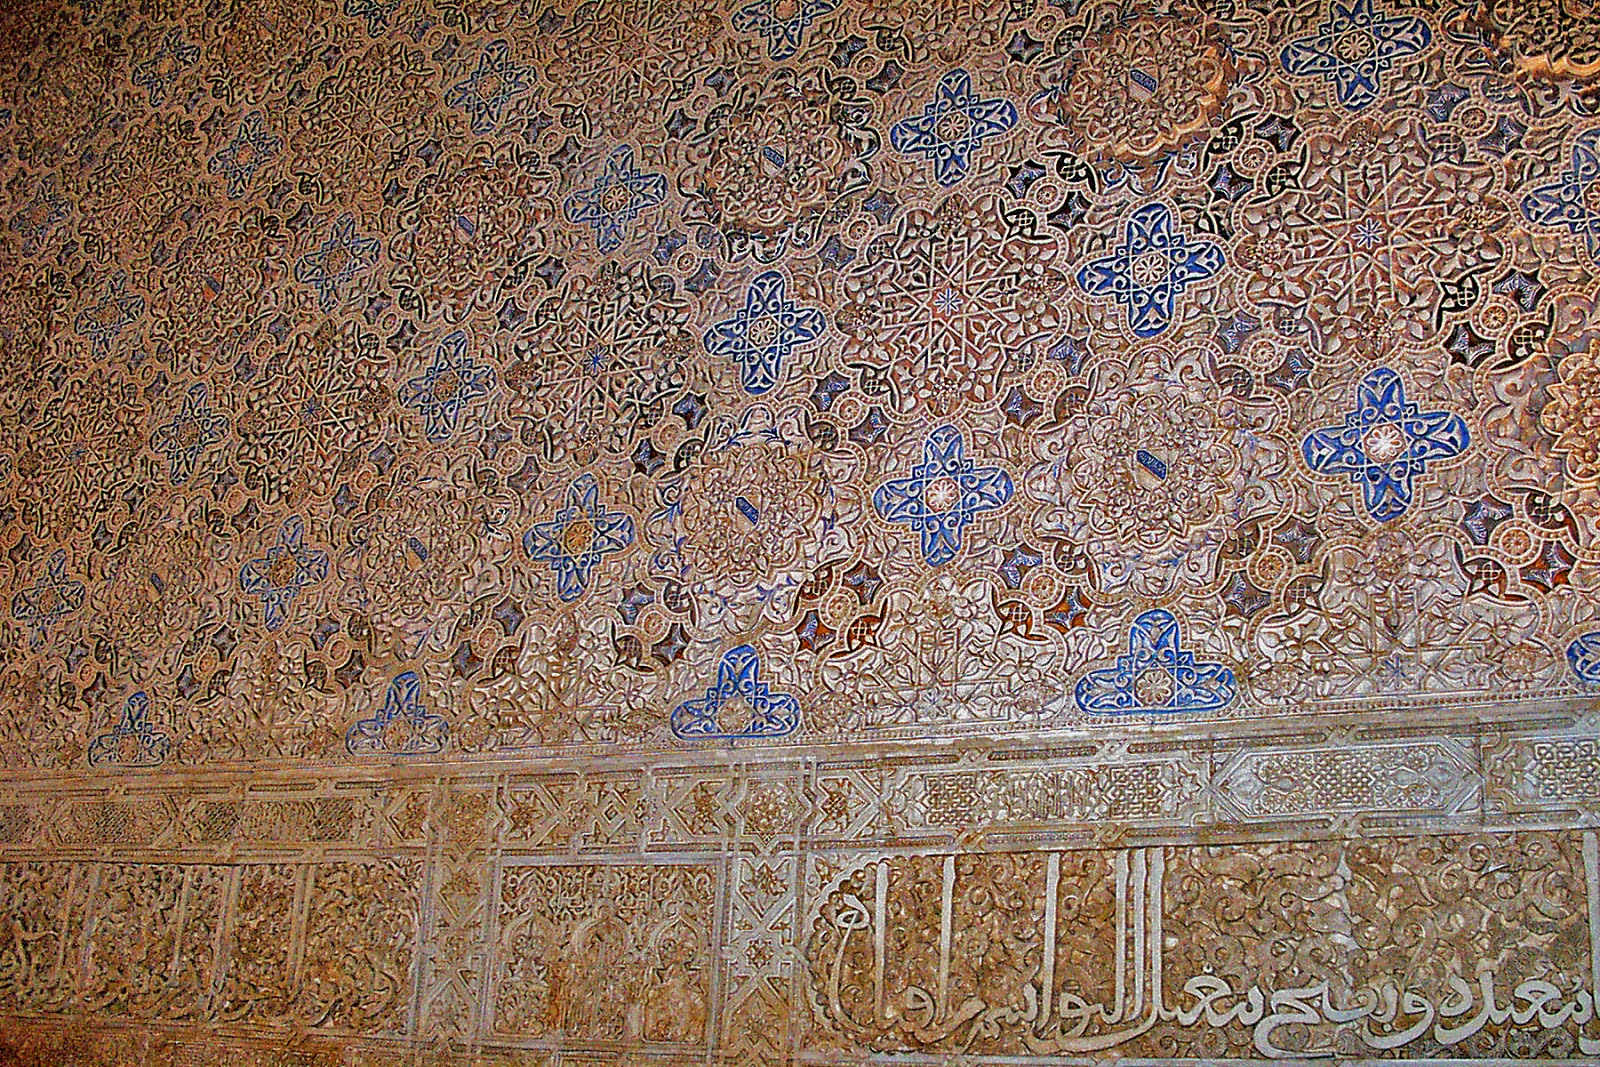 Architectural tiles glass and ornamentation in new york tiled panel in the queens chamber in the alhambra photo credit michael padwee 2006 dailygadgetfo Gallery